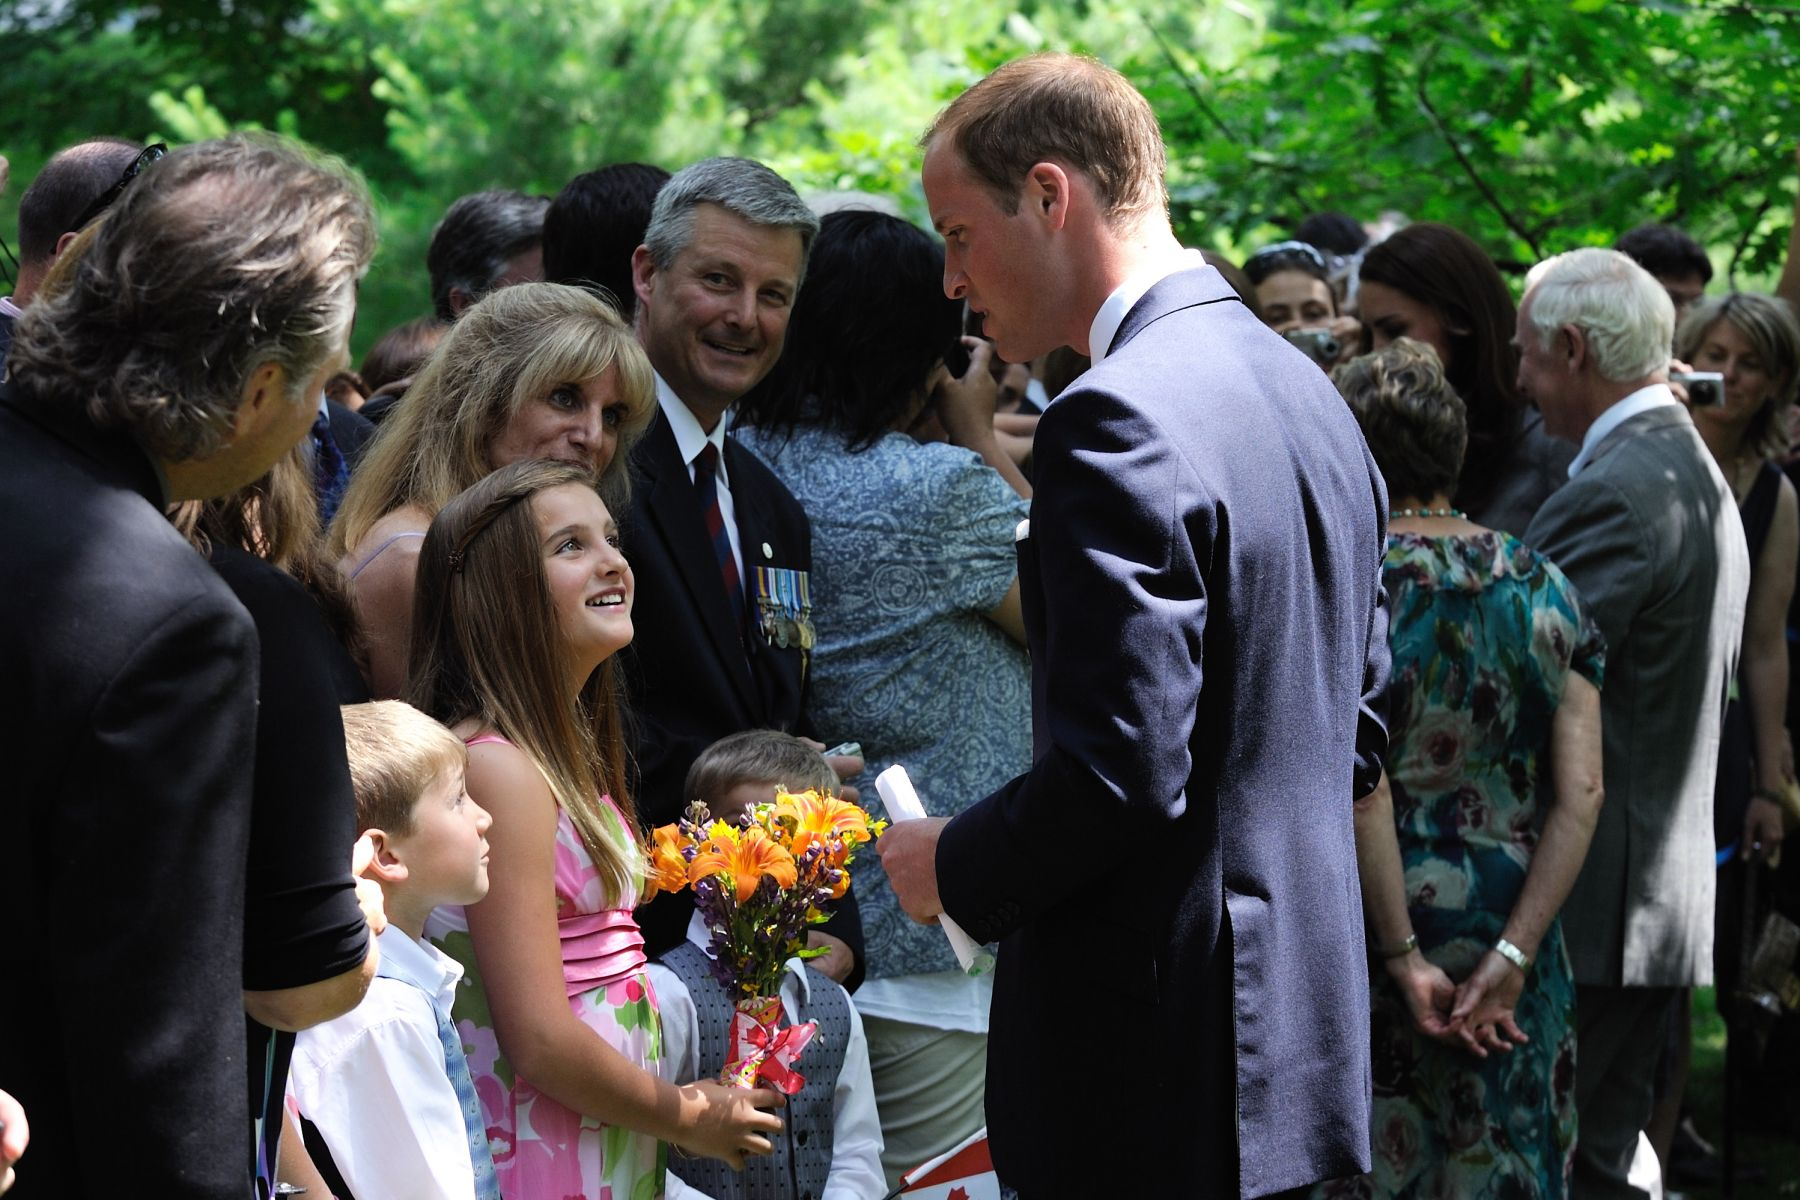 His Royal Highness stopped to speak with guests who attended the ceremony.